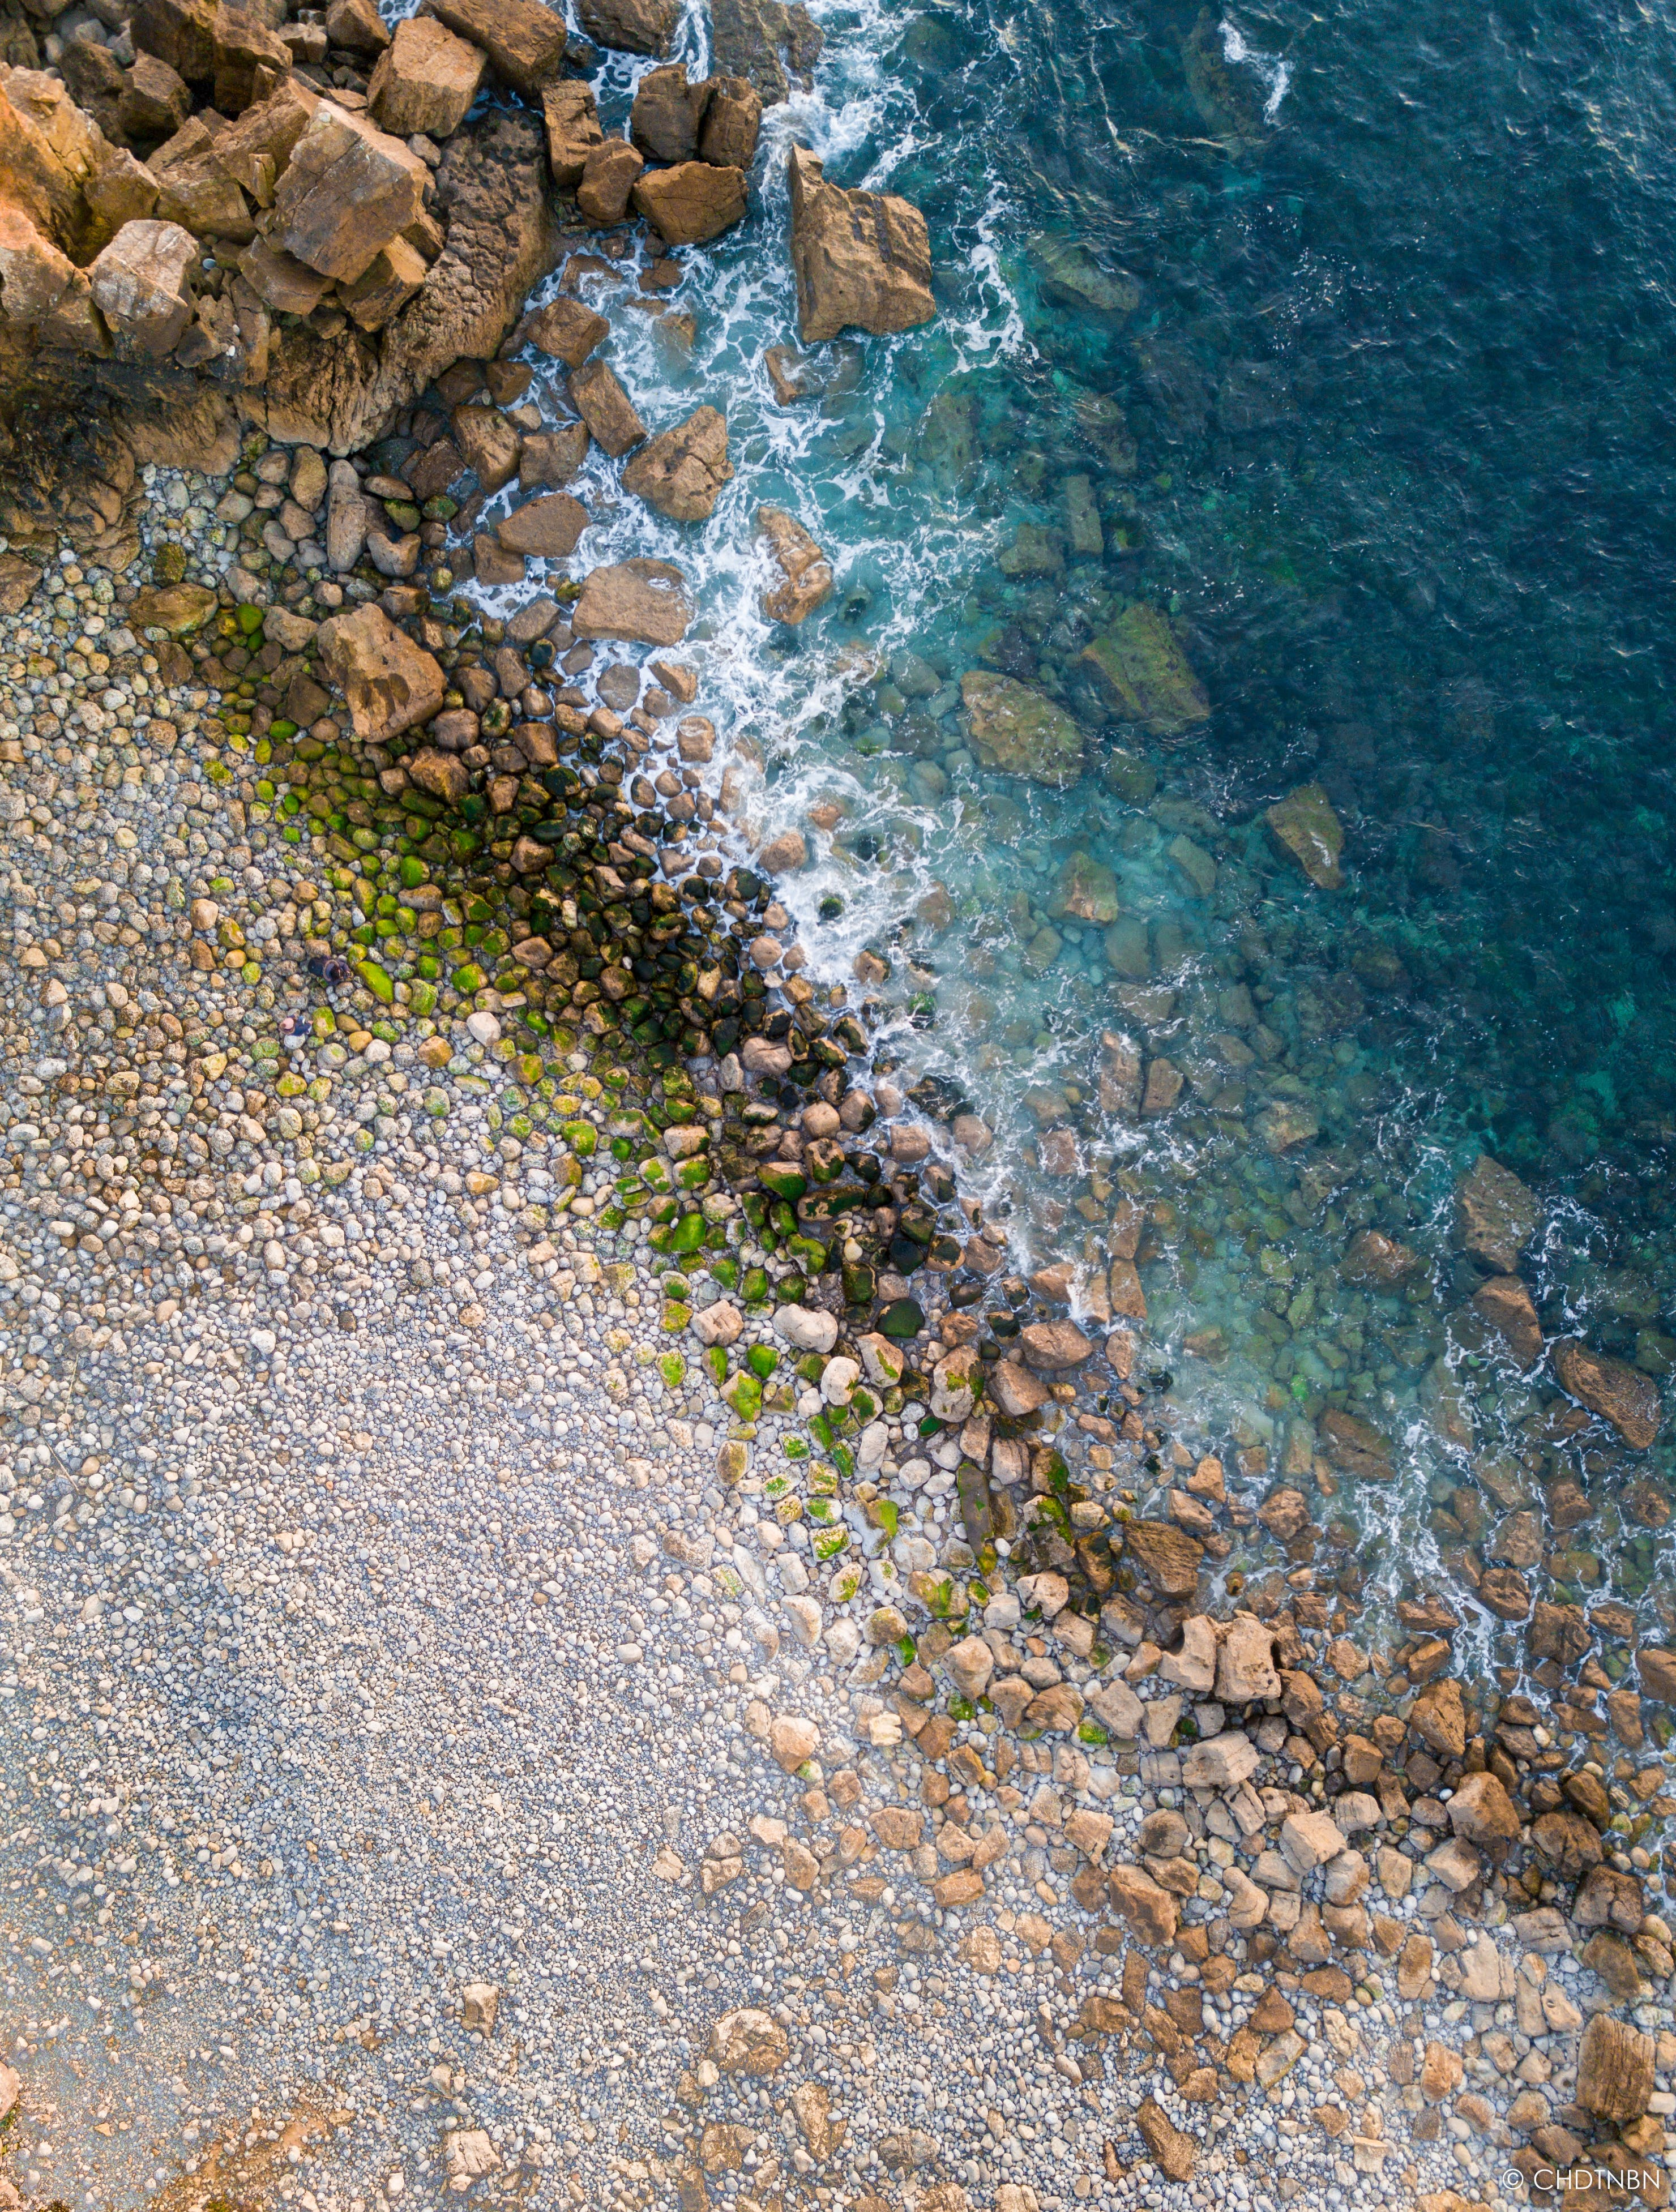 Free stock photo of brech, drone beach, drone photography, drone shot